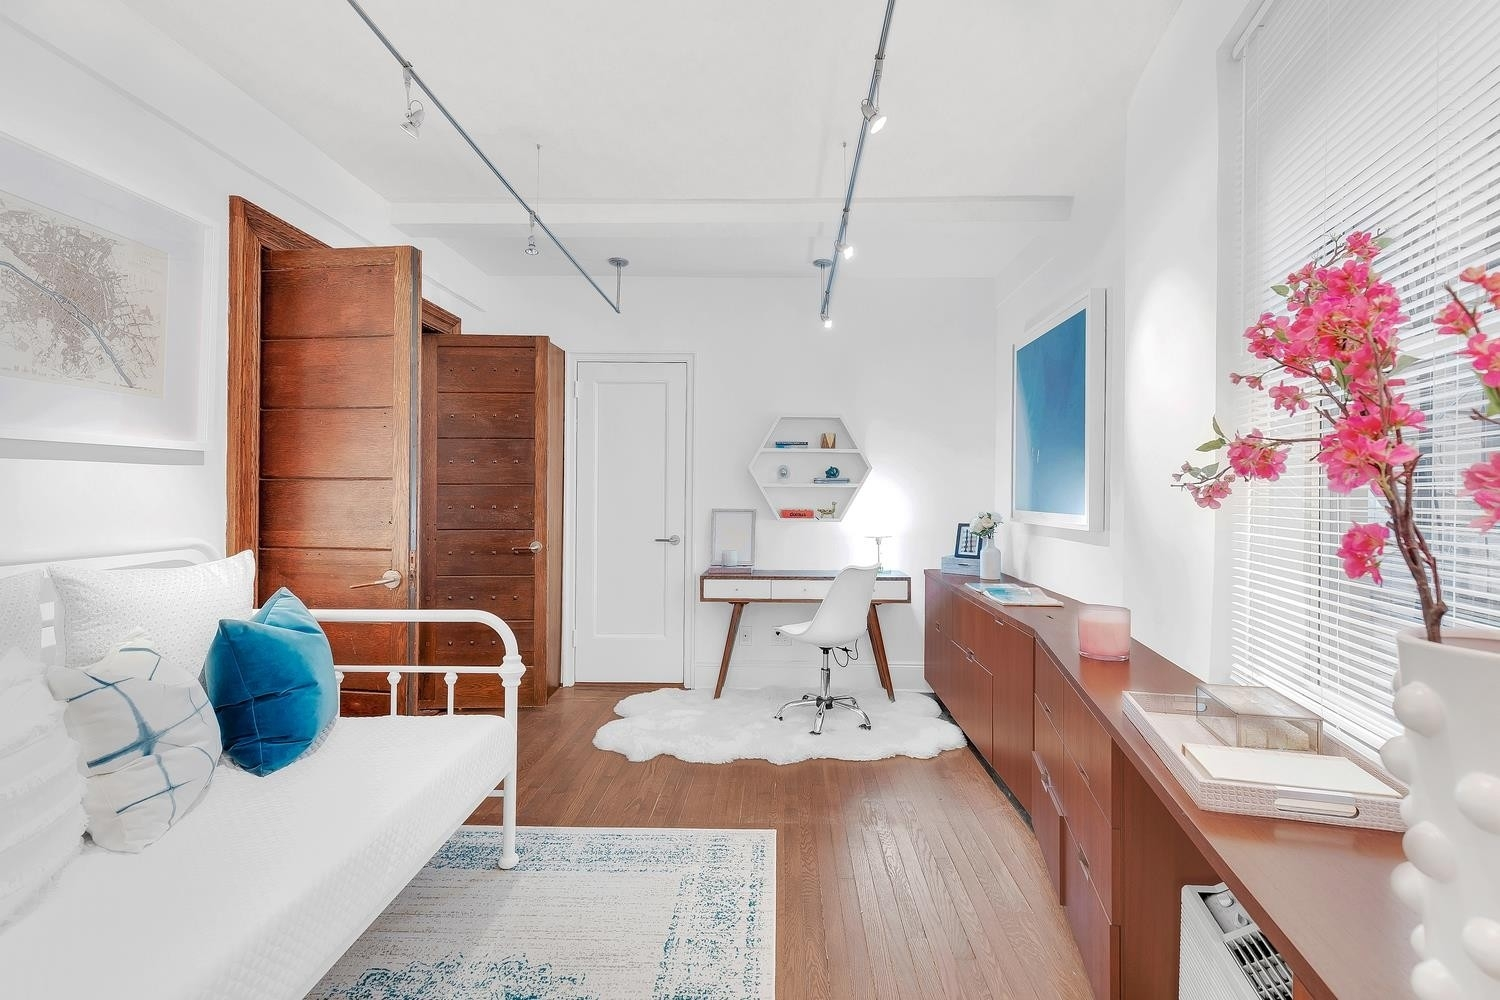 11. Co-op Properties for Sale at GRAMERCY OWNERS LTD, 44 Gramercy Park North, 4C Gramercy Park, New York, NY 10010